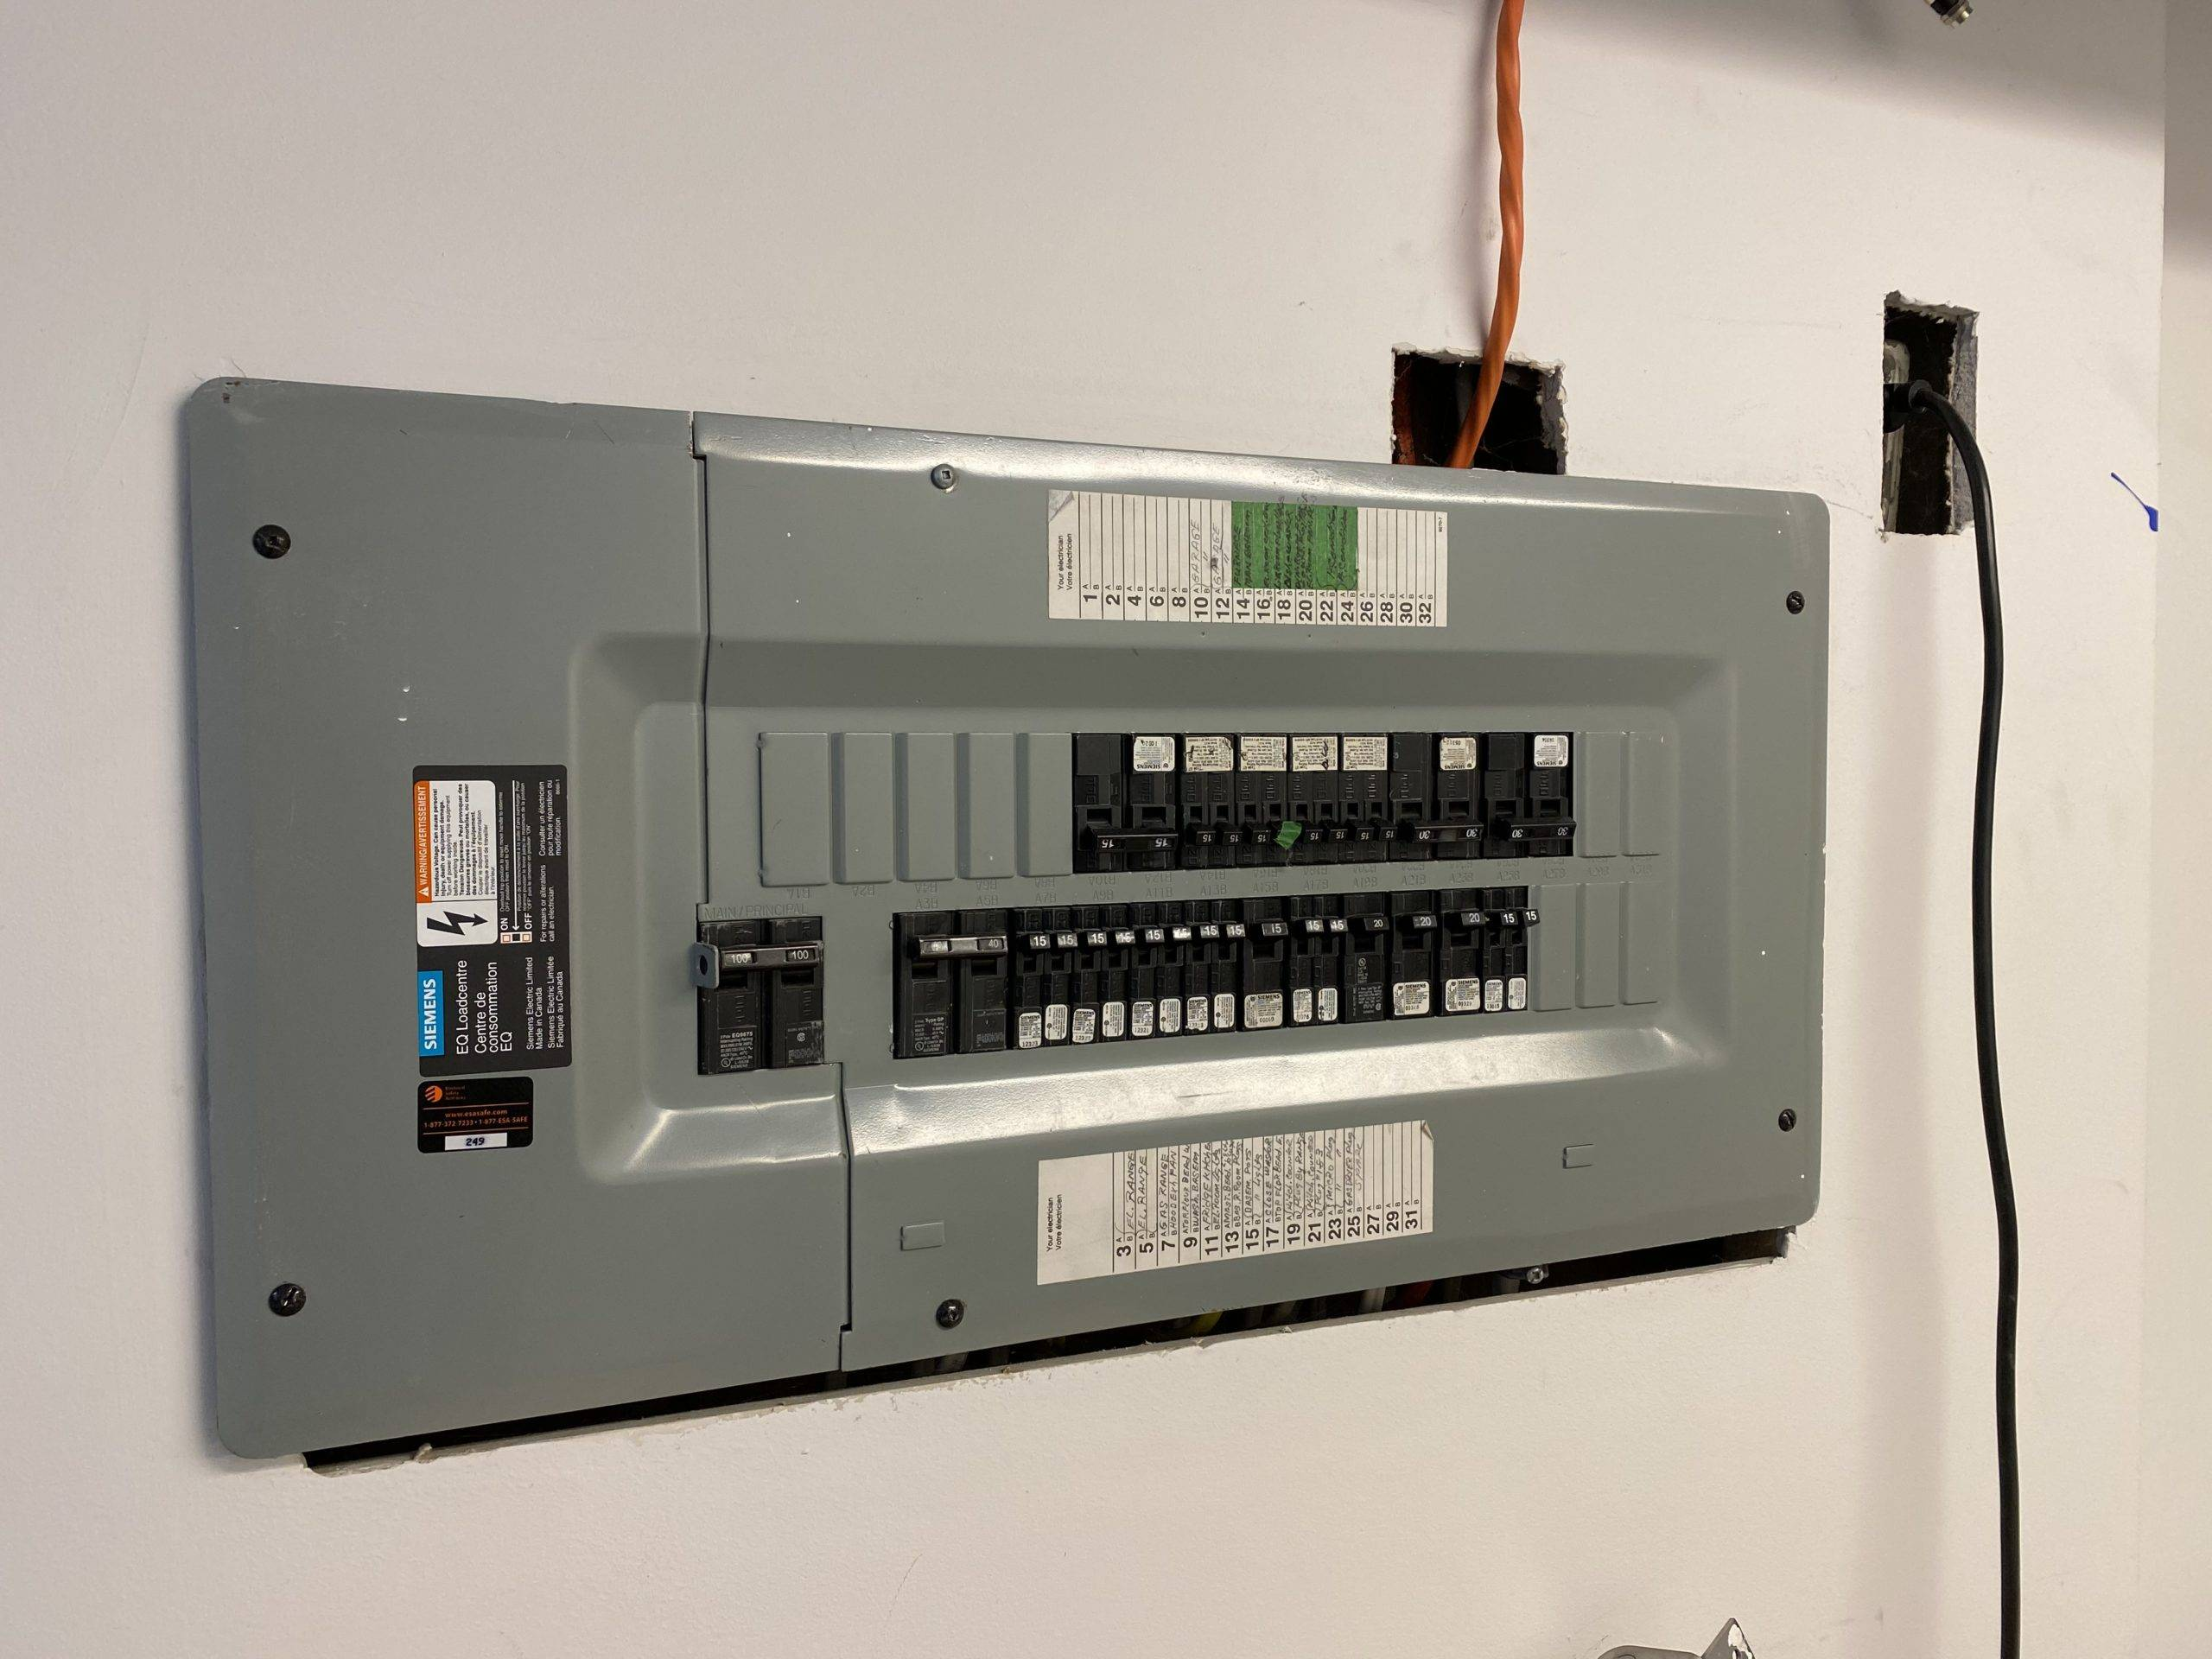 Power outlet box in with breaker switches